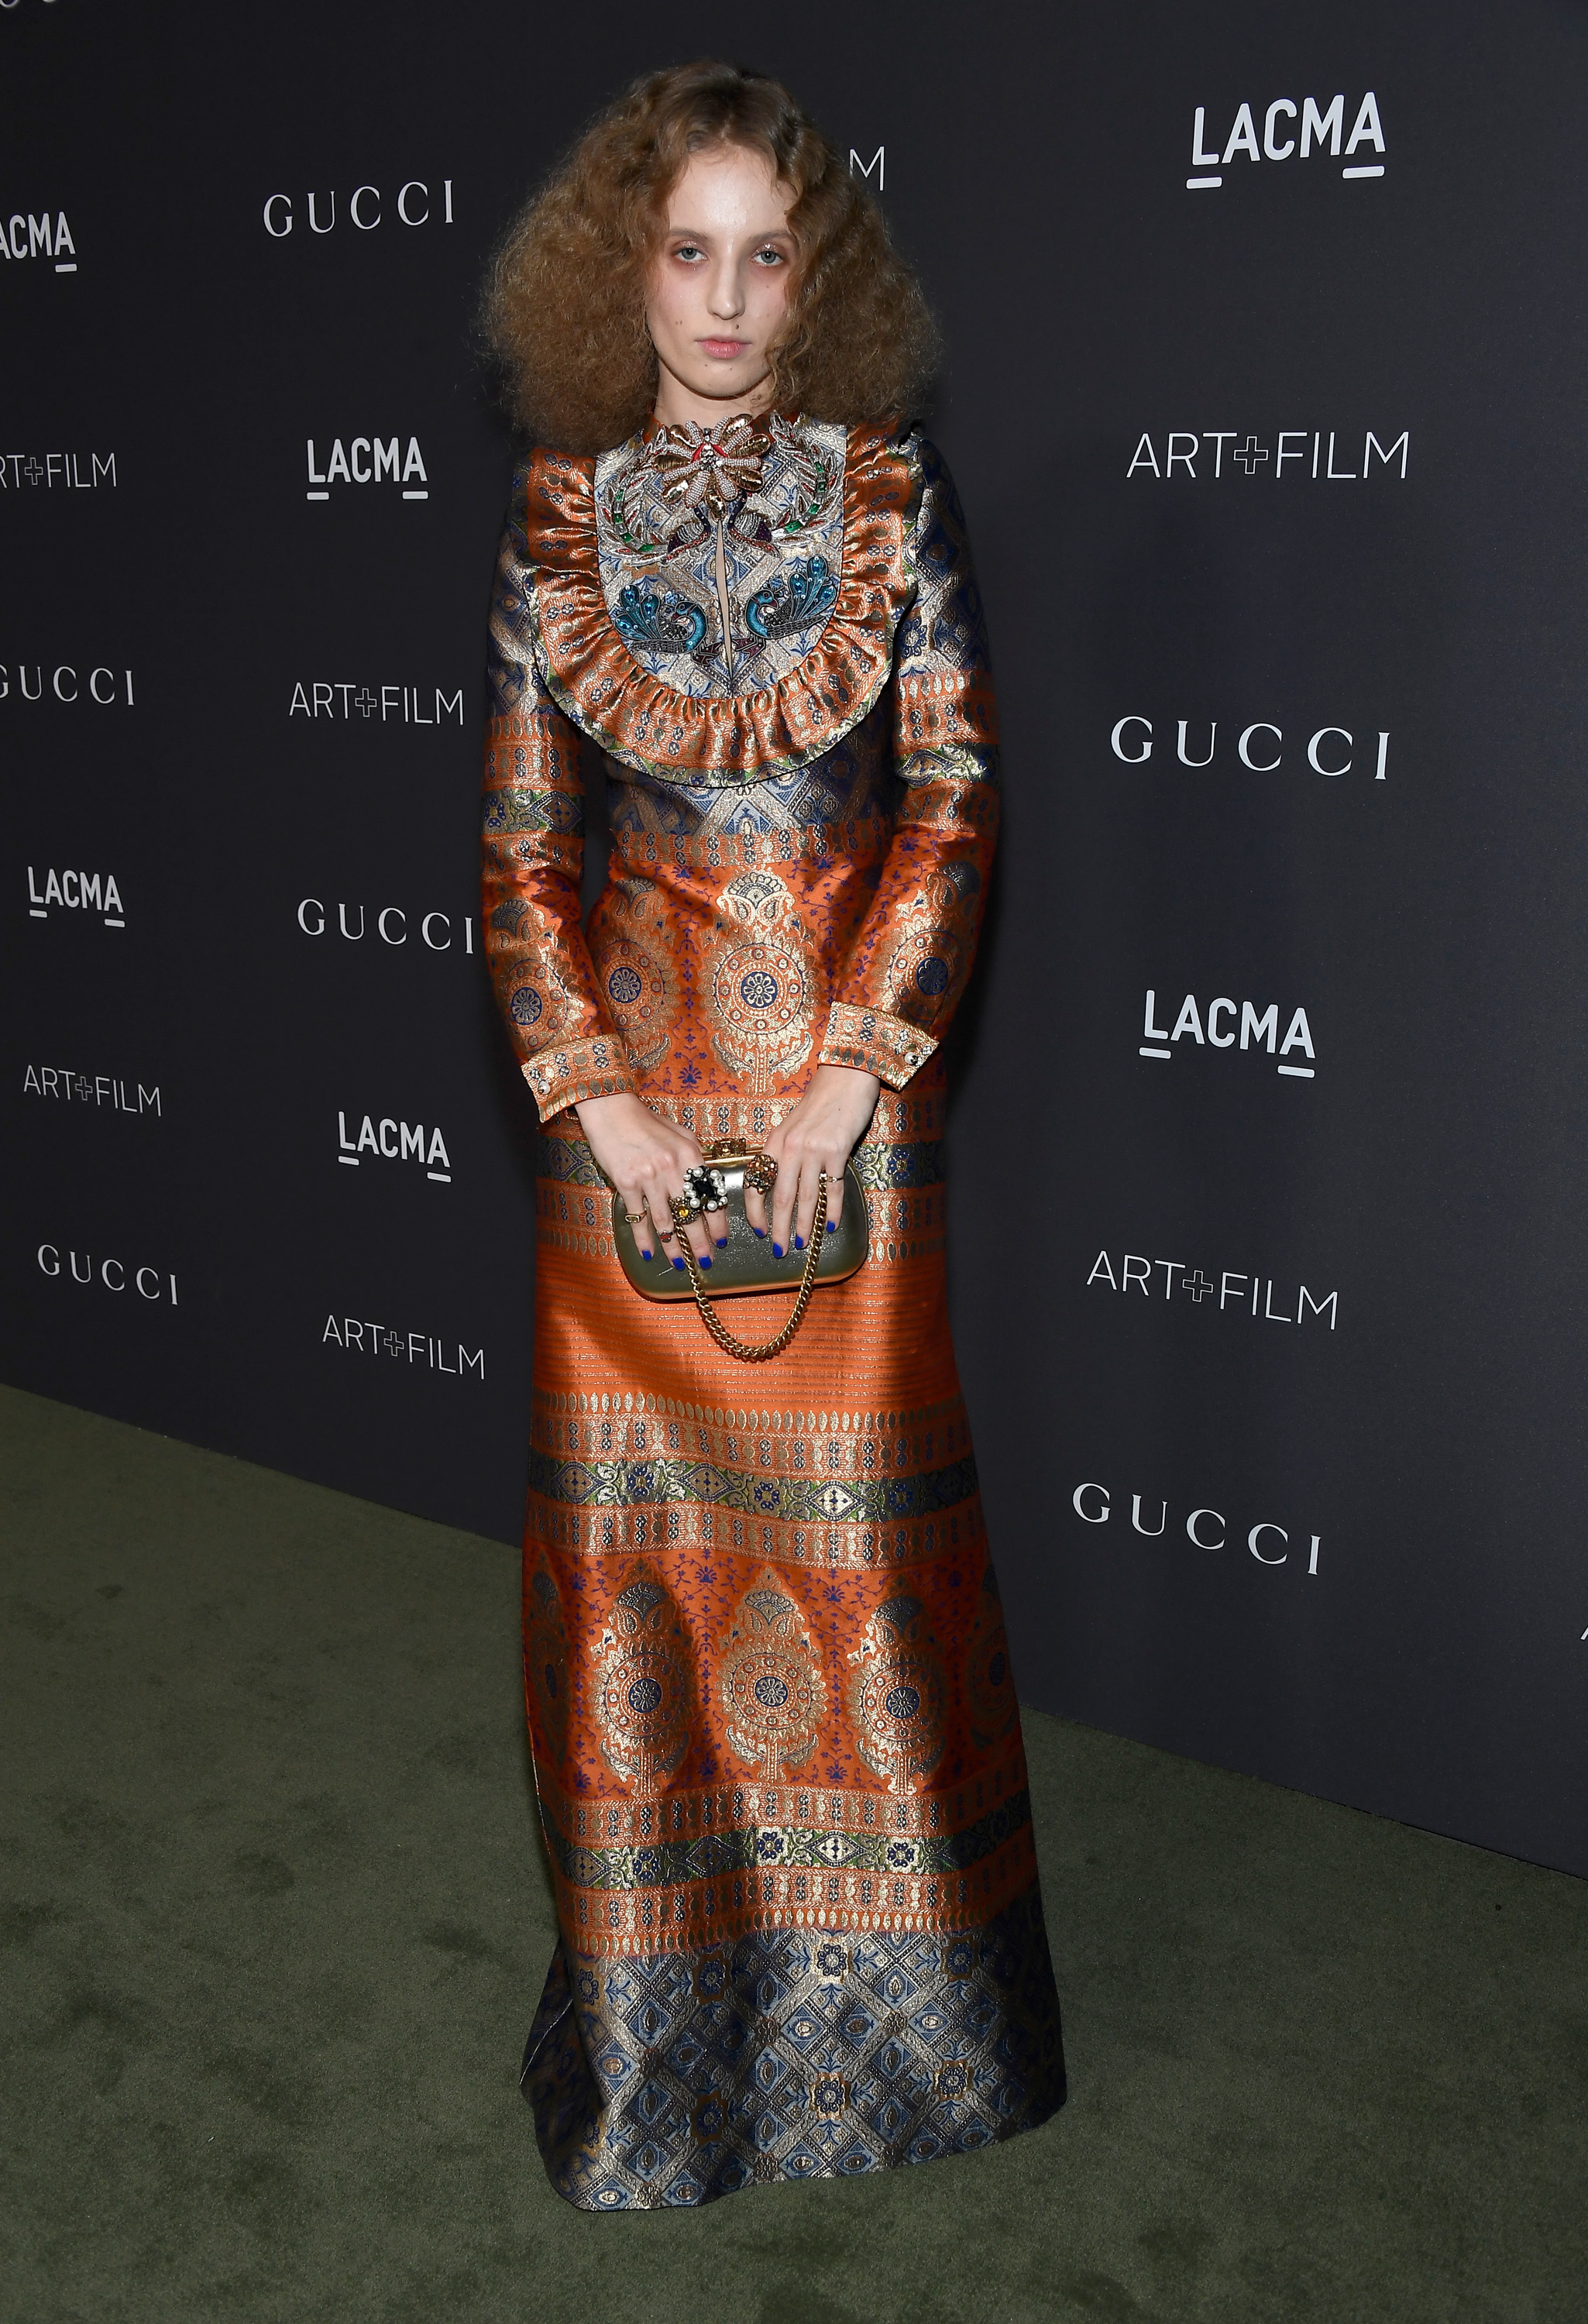 LOS ANGELES, CA - OCTOBER 29:  Artist Petra Collins, wearing Gucci, attends the 2016 LACMA Art + Film Gala honoring Robert Irwin and Kathryn Bigelow presented by Gucci at LACMA on October 29, 2016 in Los Angeles, California.  (Photo by Frazer Harrison/Getty Images for LACMA)